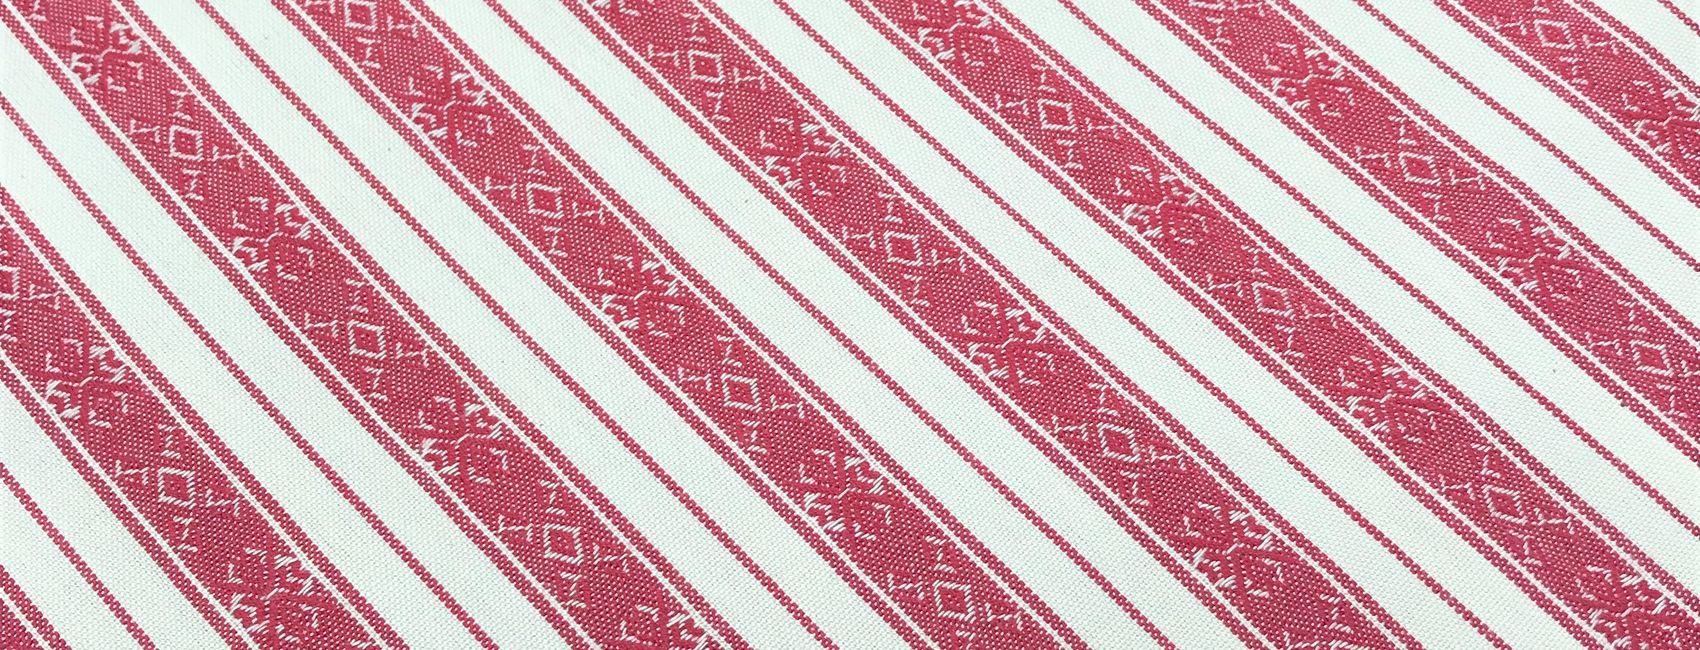 120 - Traditional stripes